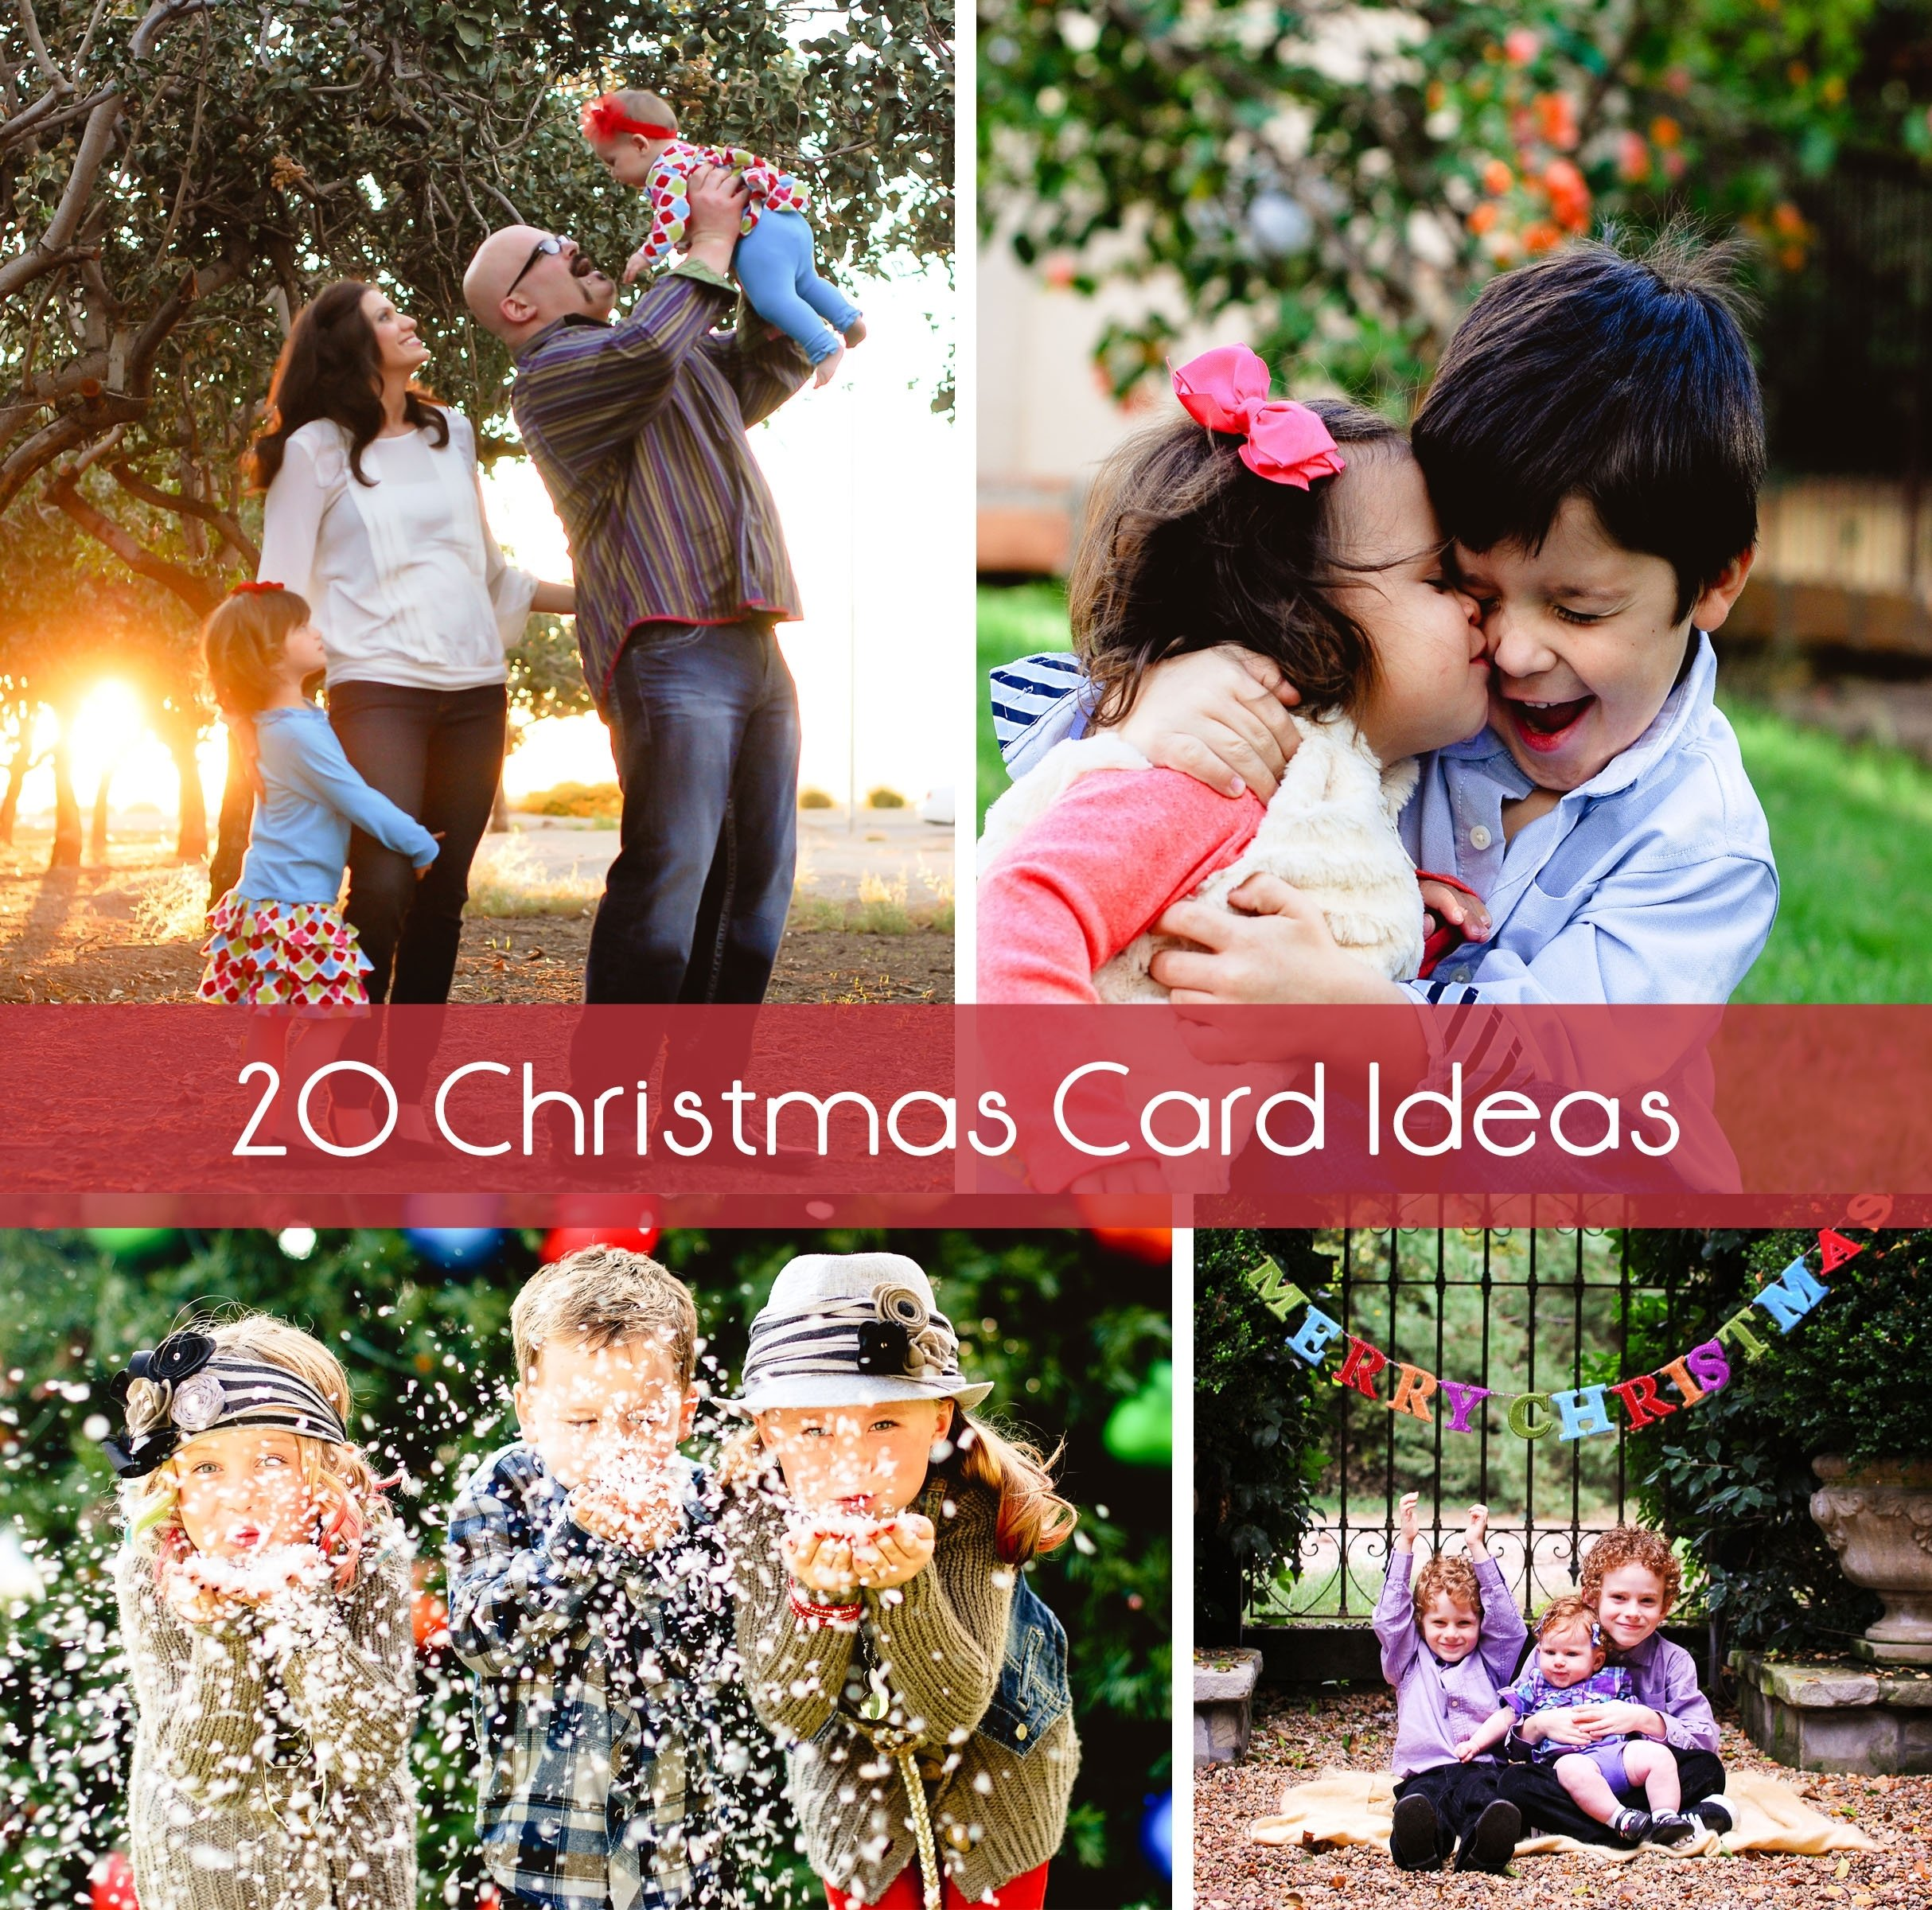 10 Cute Christmas Card Photo Ideas For Kids 20 christmas card ideas 4 2020